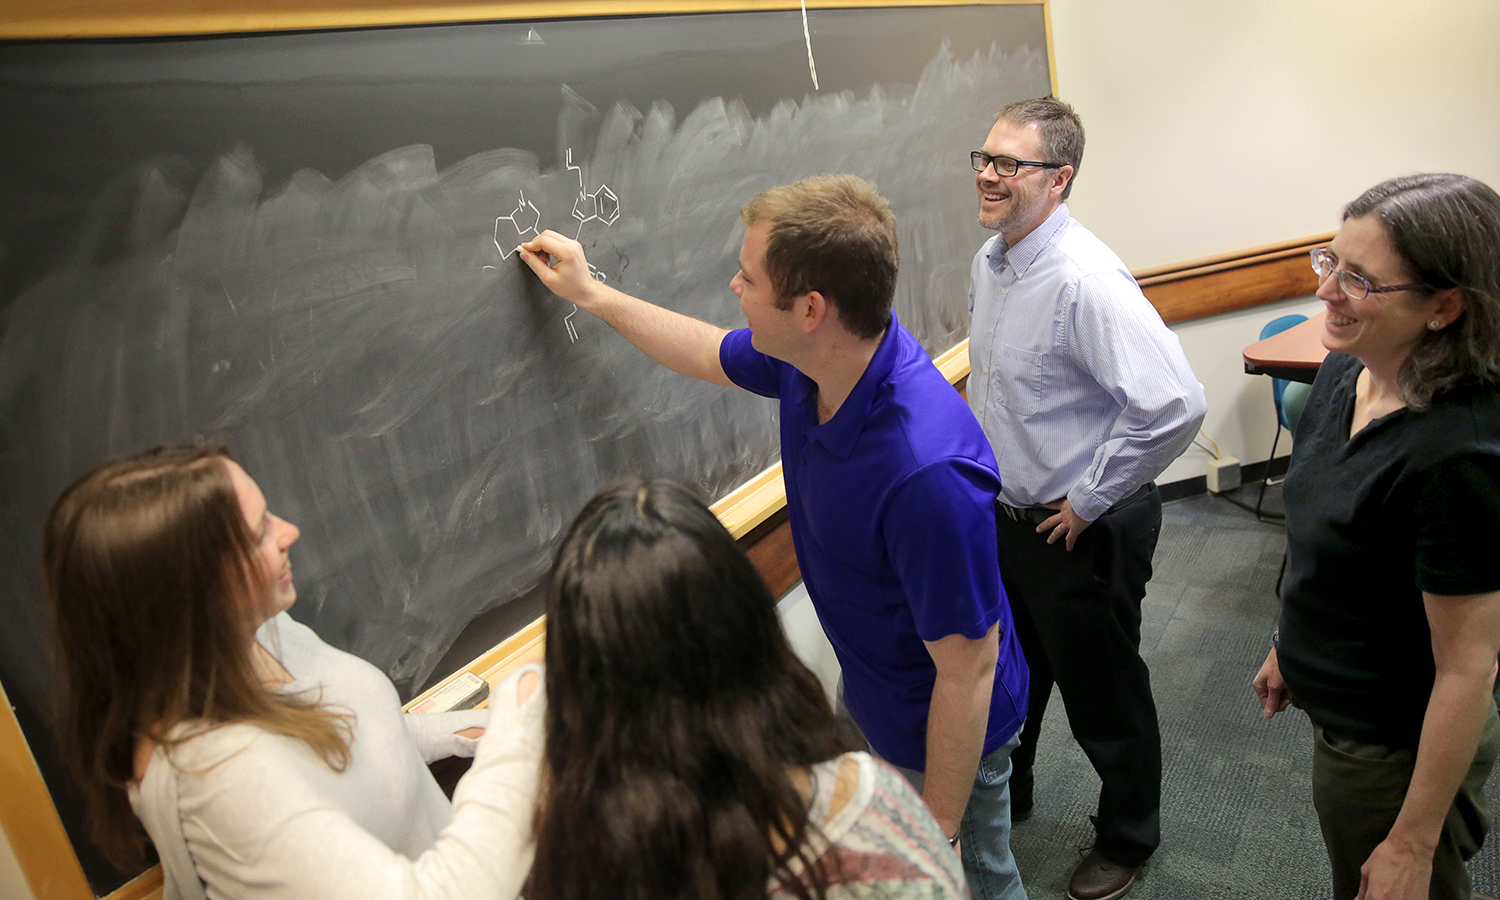 Professor of Chemistry Erin Pelkey and Associate Professor of Biology Patricia Mowery look on asNathanyal Truax '17 draws a molecular diagram for a bisindole–pyrrolidinone conjugate, whichiTraux is researching for his honors thesis on the synthesis of indole-containing small molecules with potential anti-cancer activity.